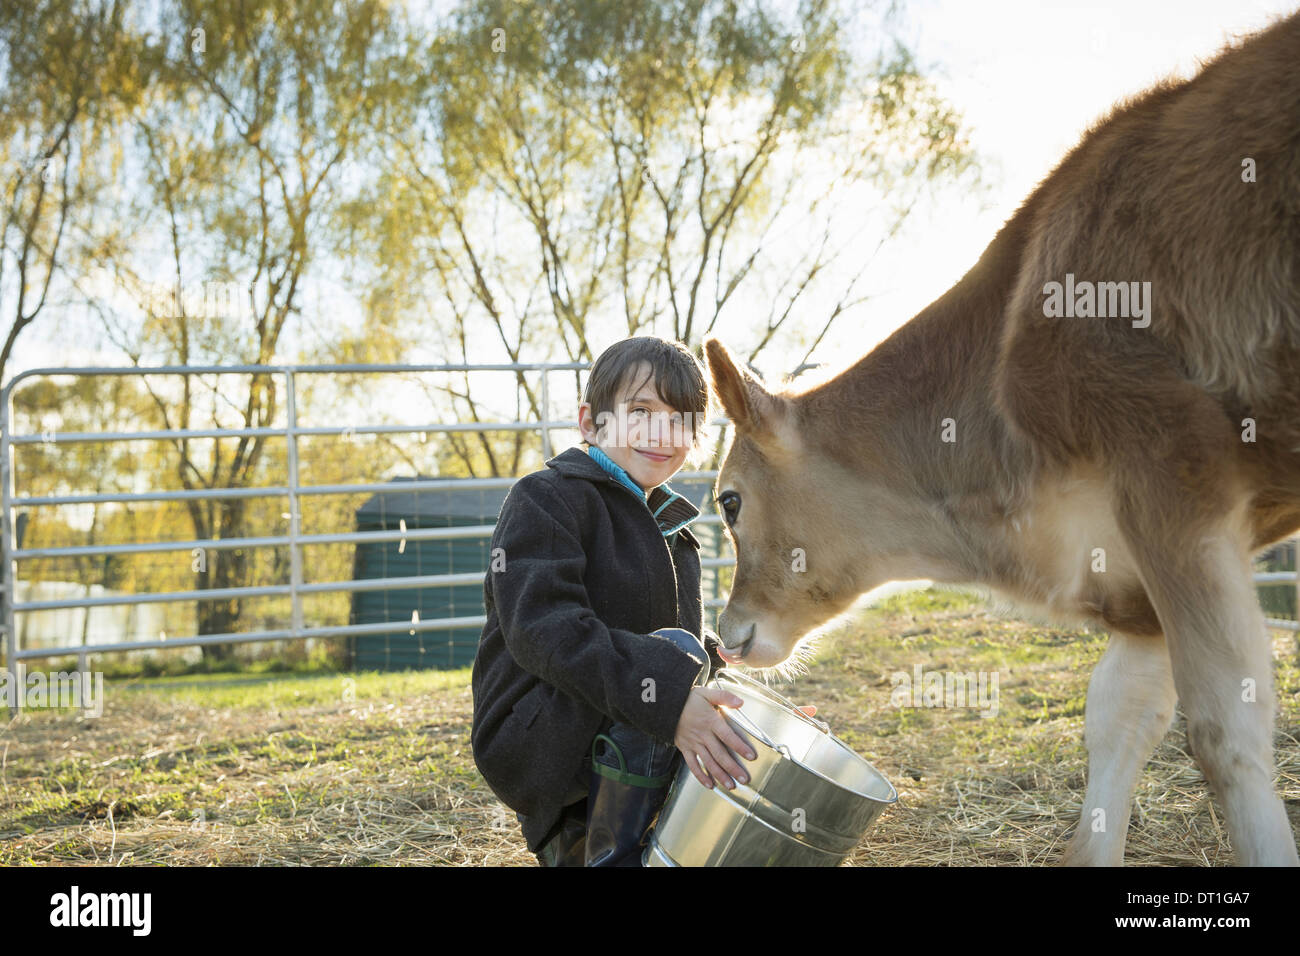 A young boy feeding a calf by bucket in a paddock at an sanctuary - Stock Image